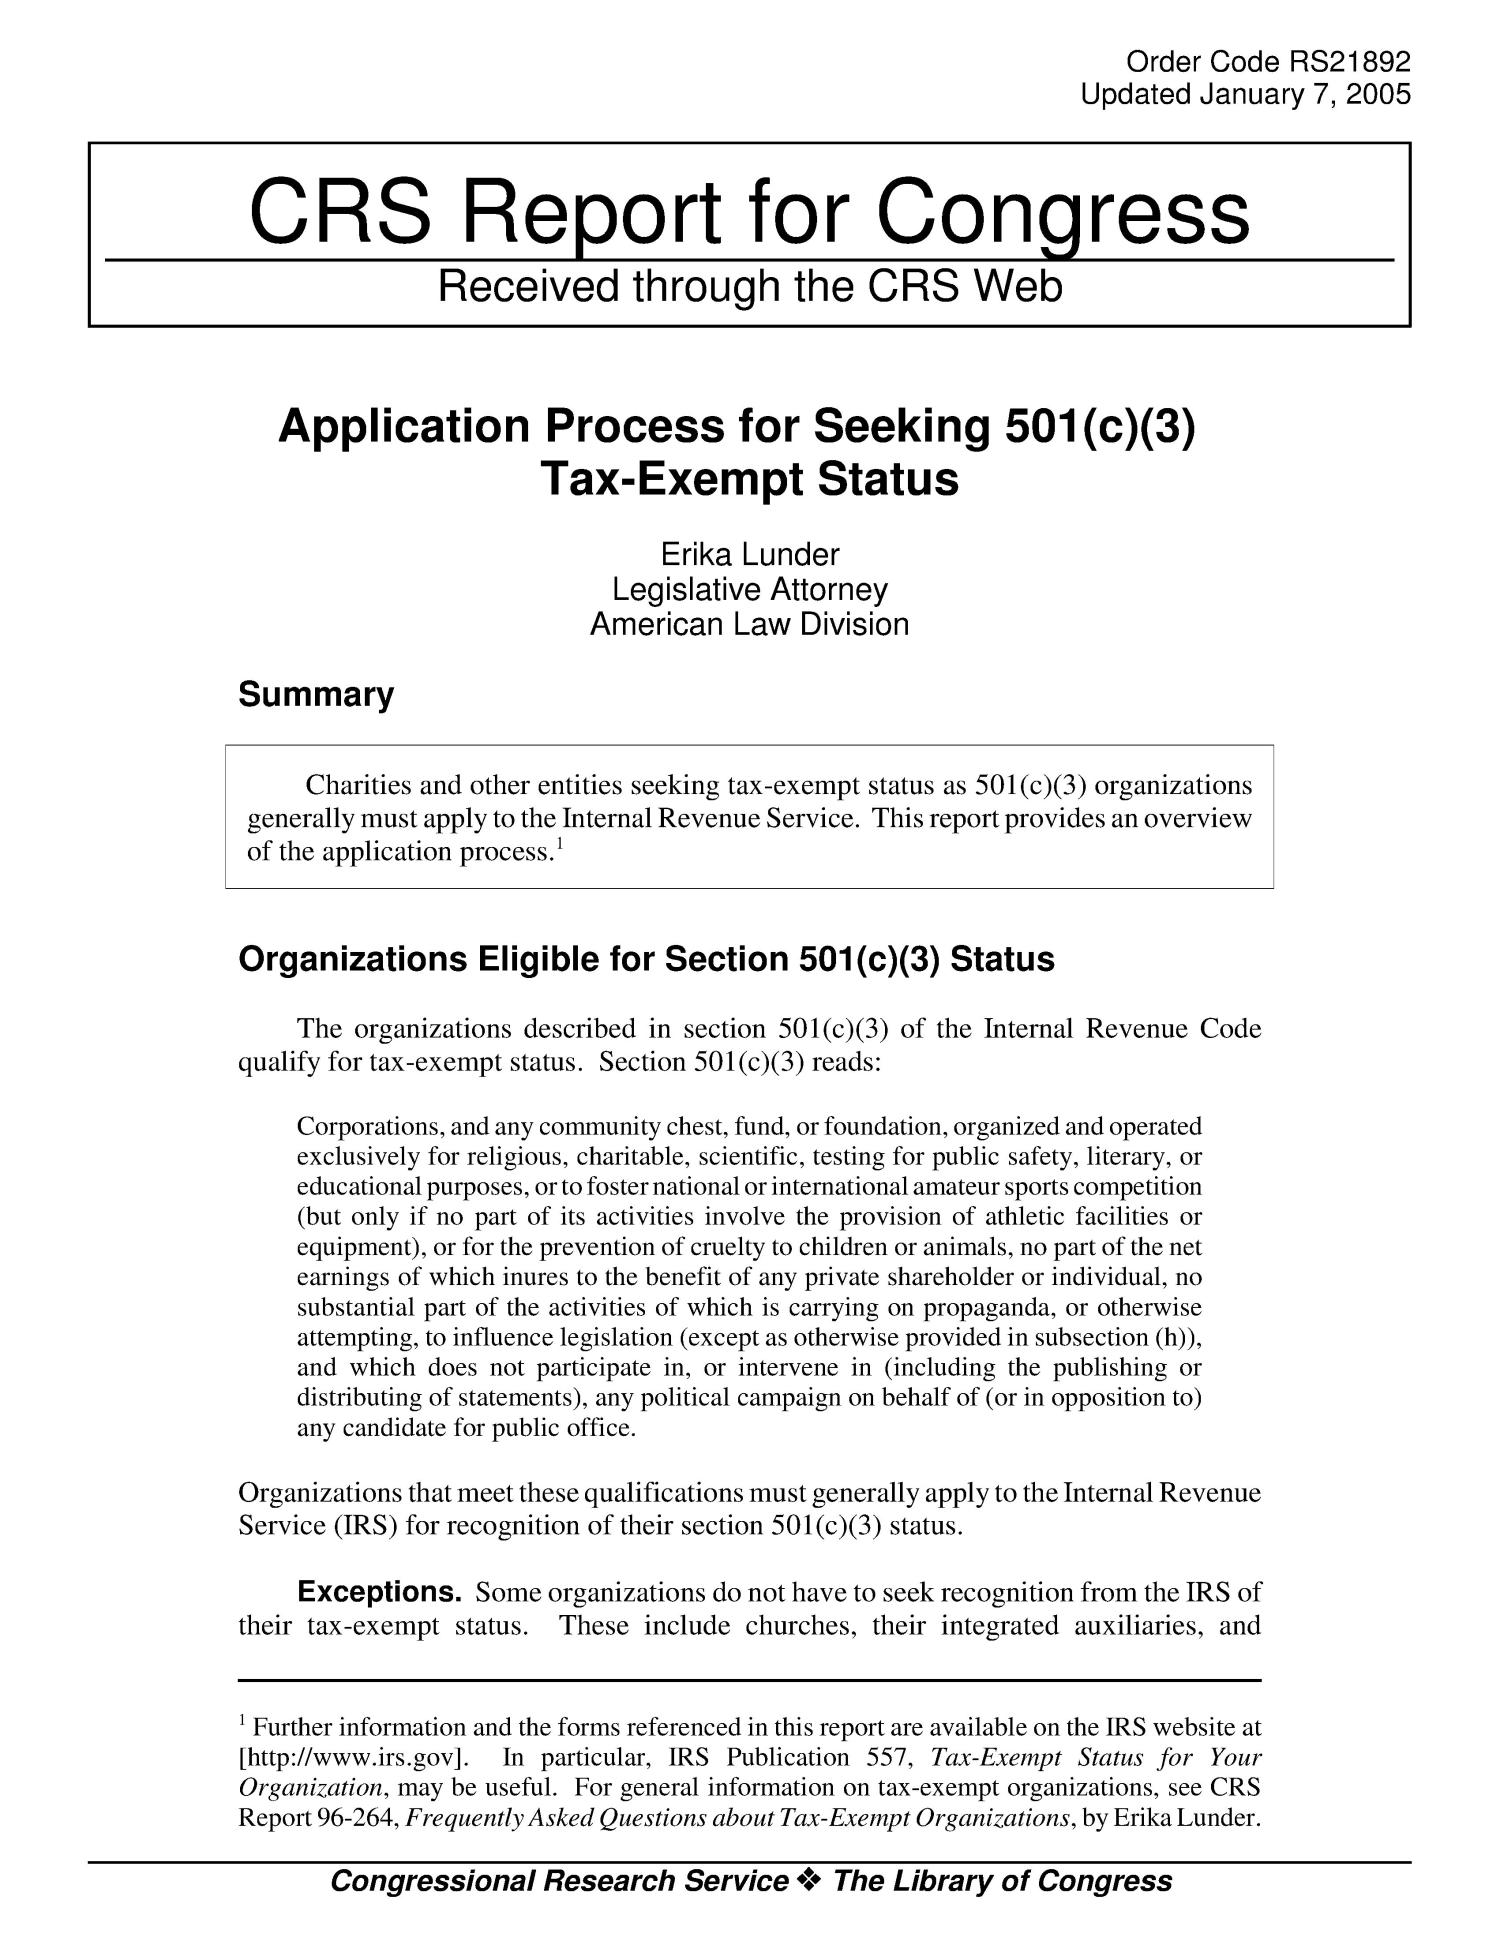 Irs 501c3 Application Status Check